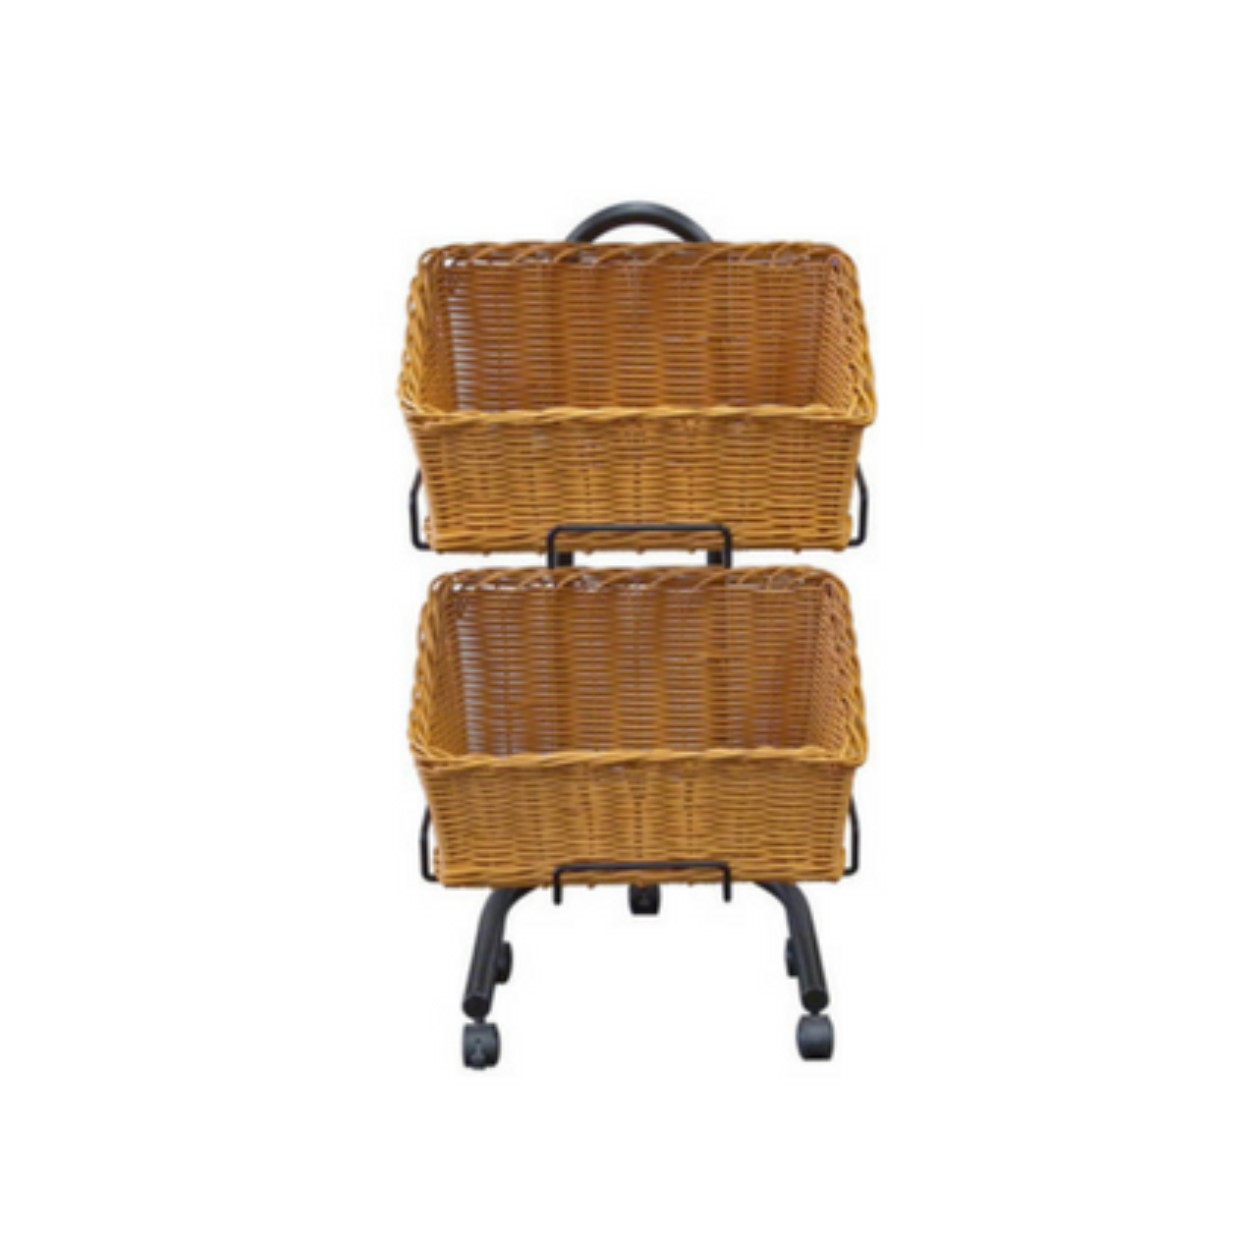 Polywicker Slanted Baskets Double Stand